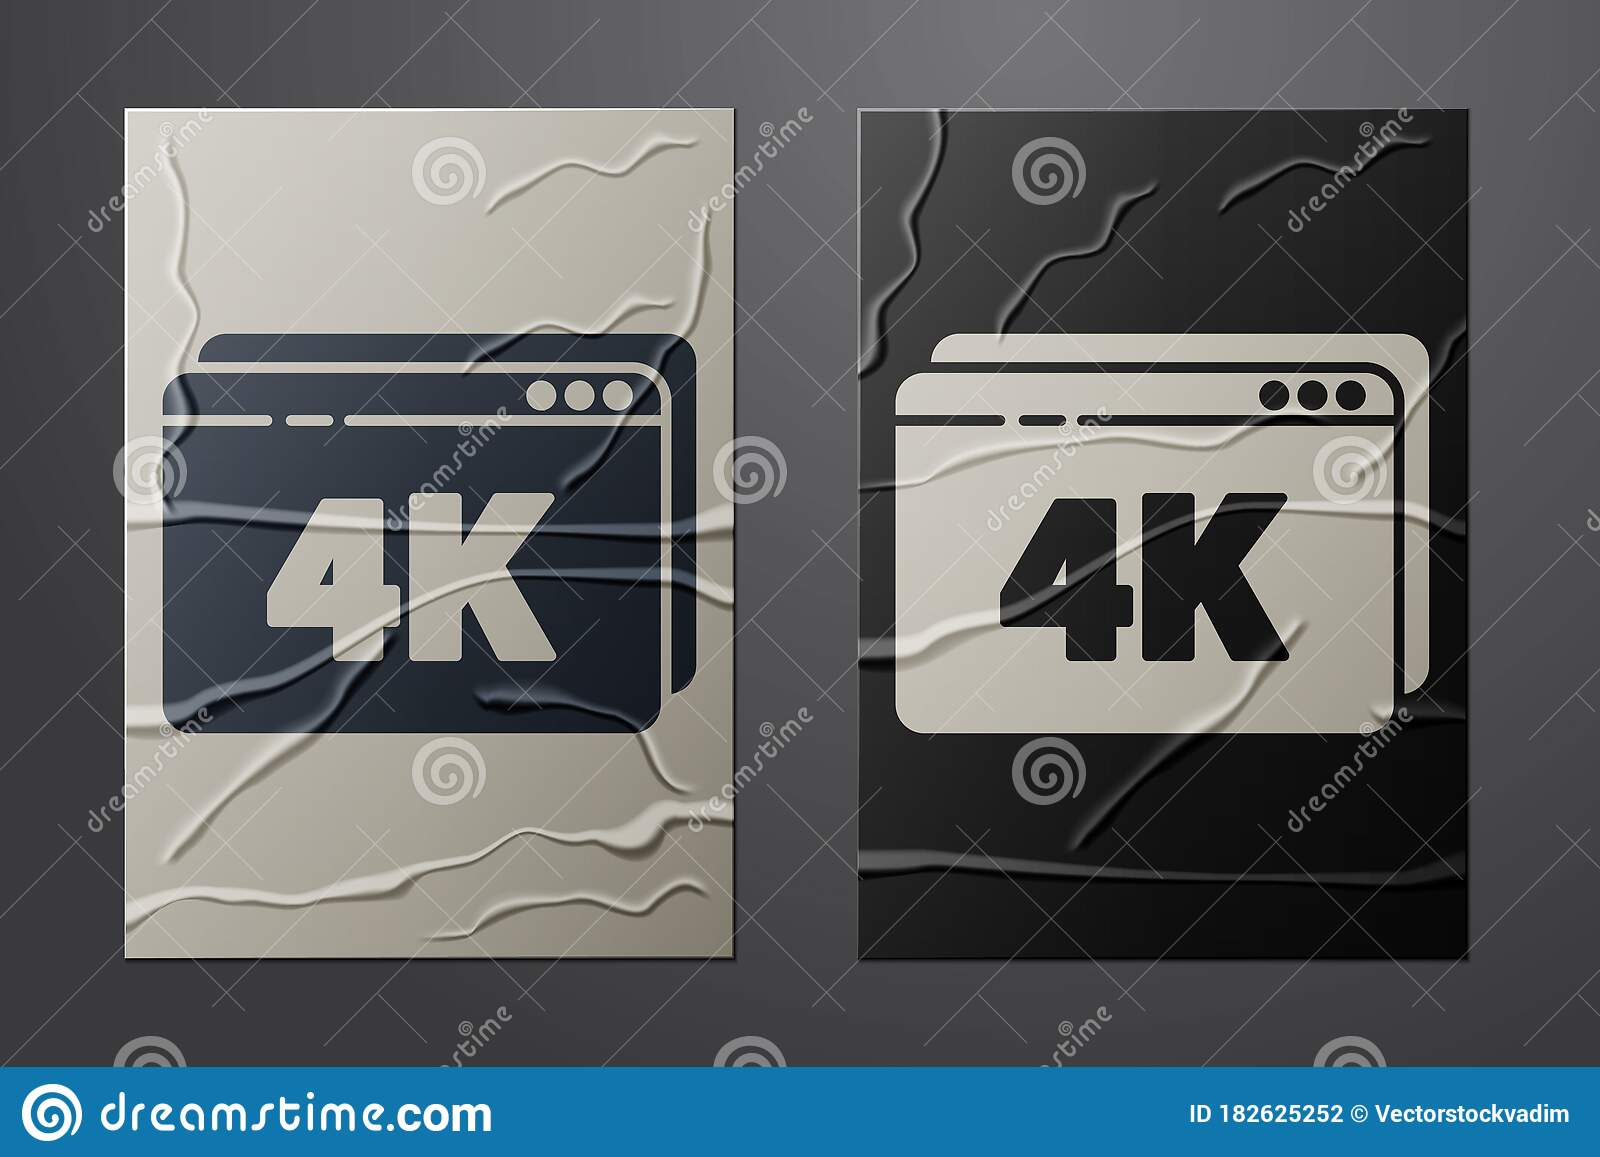 White Online Play Video With 4k Ultra HD Video Technology Icon Isolated On  Crumpled Paper Background. Film Strip With Stock Vector - Illustration of  media, movie: 182625252